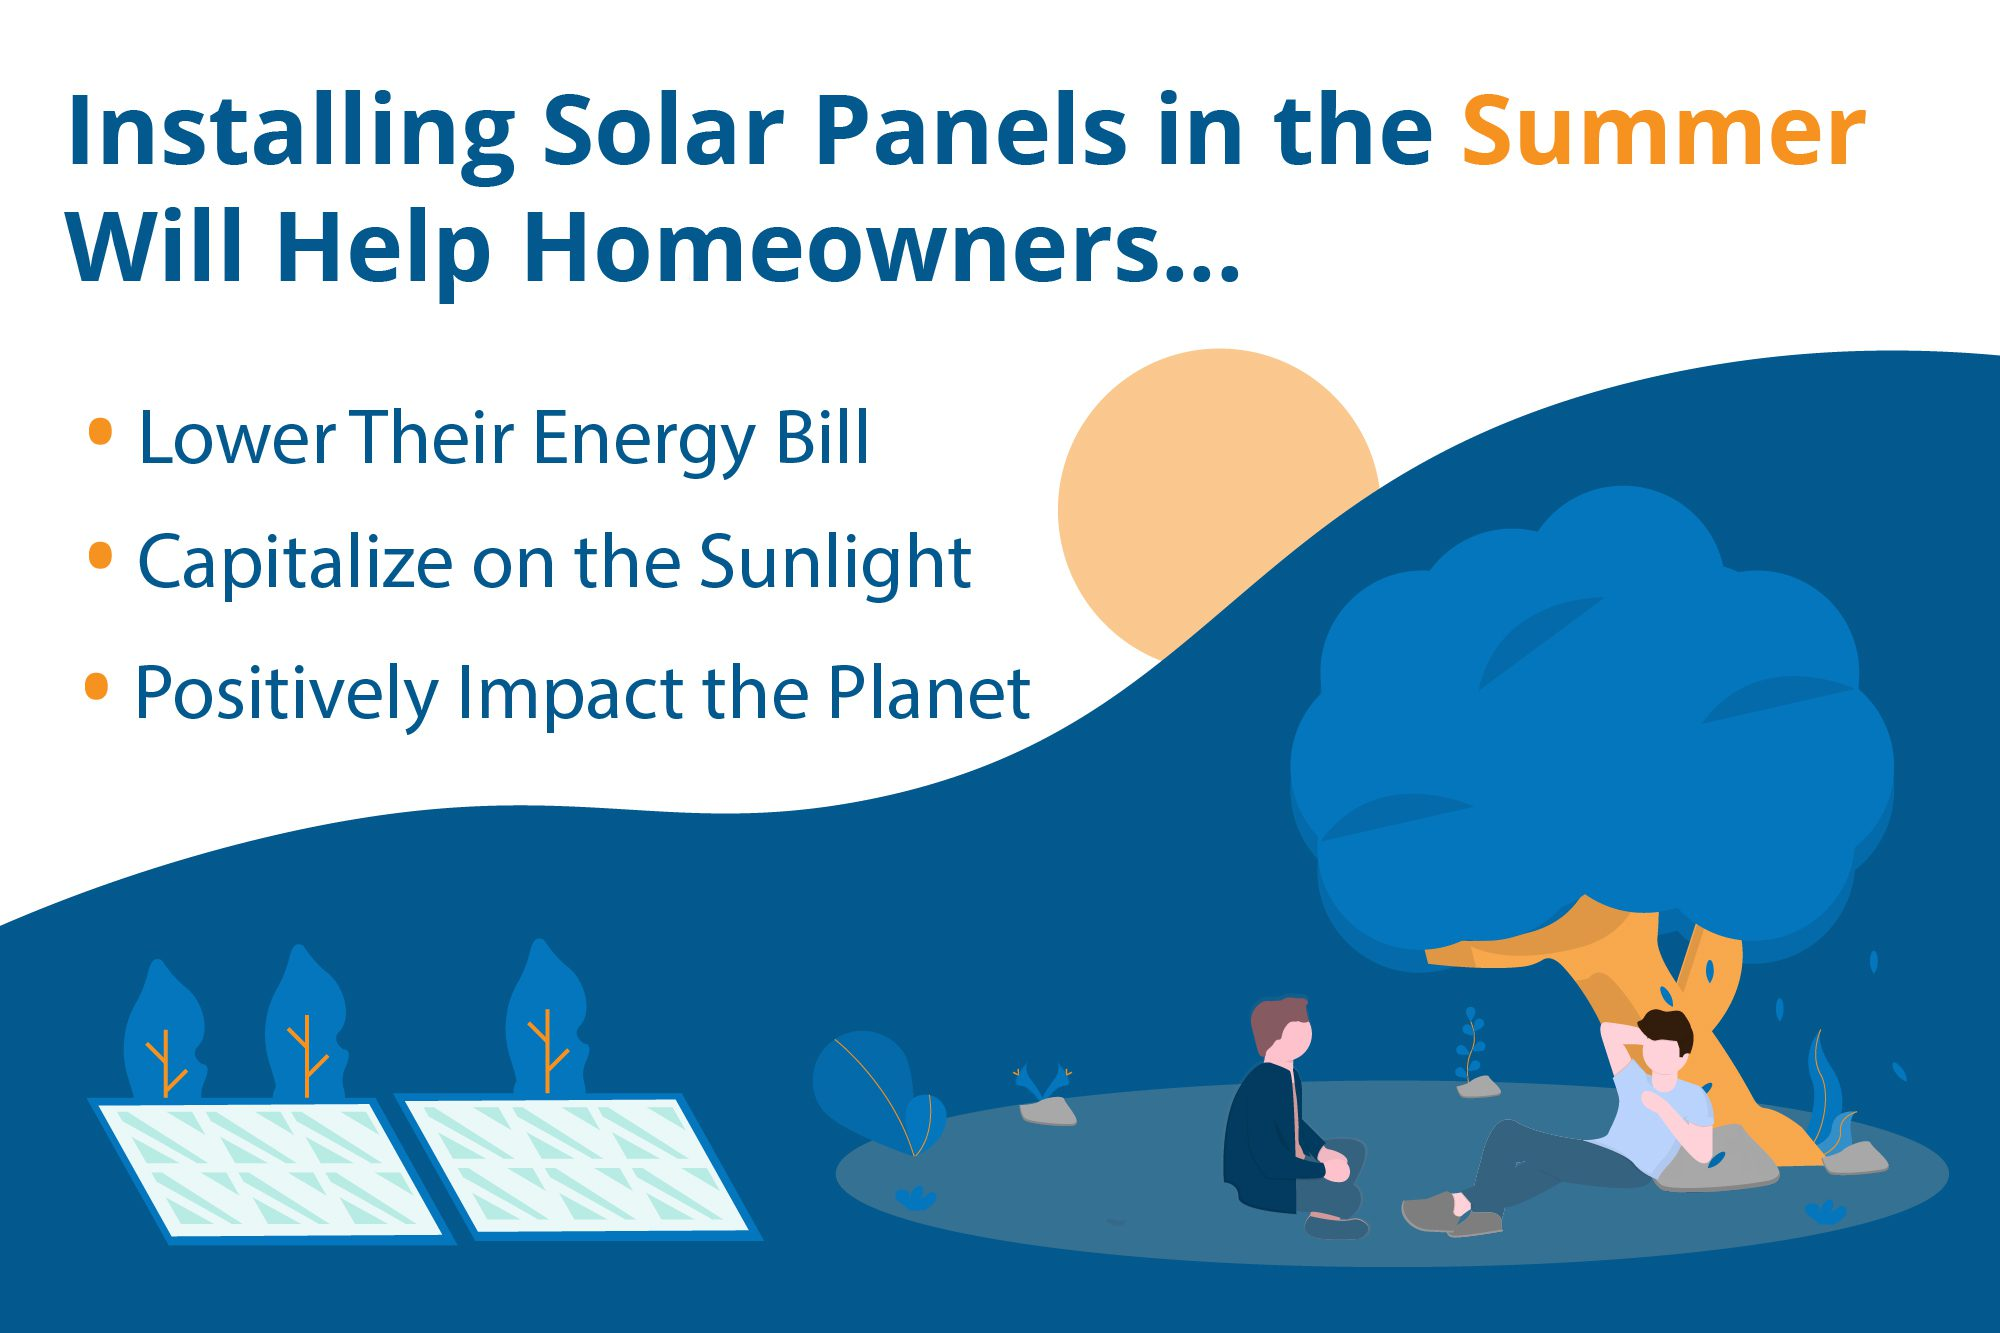 Reasons why homeowners should convert to Solar